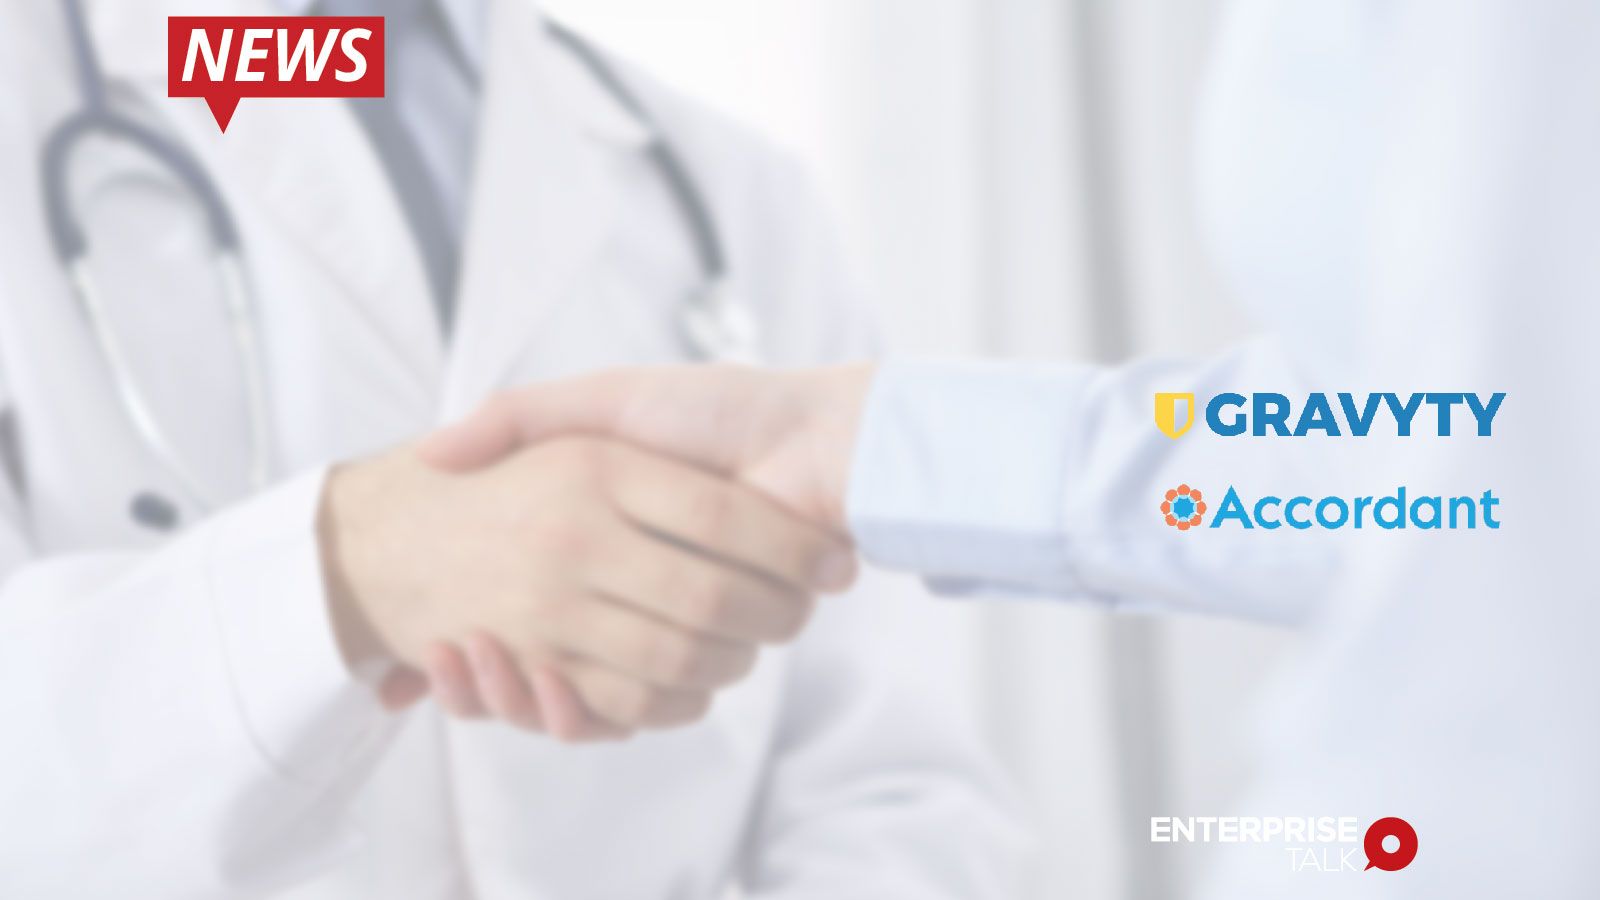 Gravyty, Accordant, Health Care, Artificial Intelligence